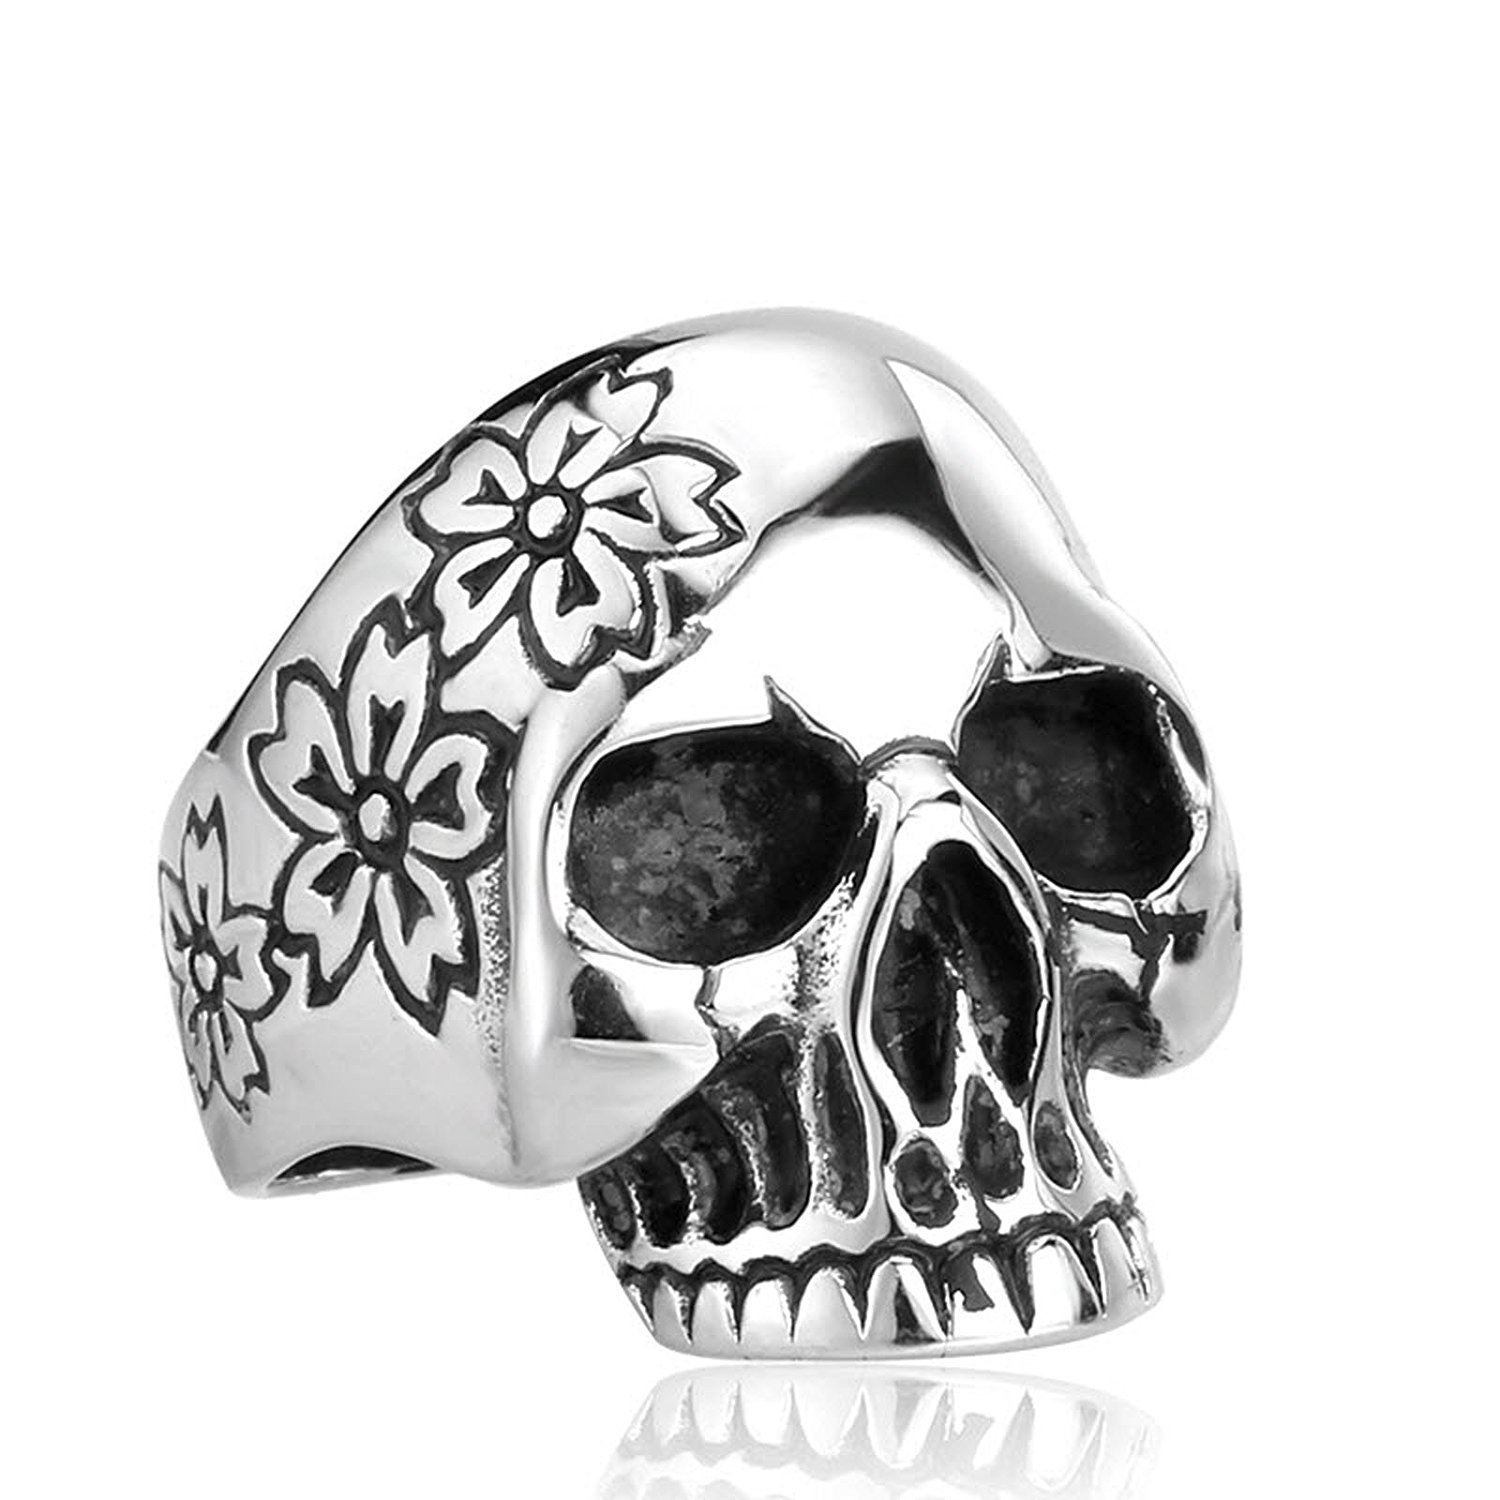 doreenbeads men jewelry ring steel skeleton s pin rings skull man smile fashion unique stainless punk vintage biker